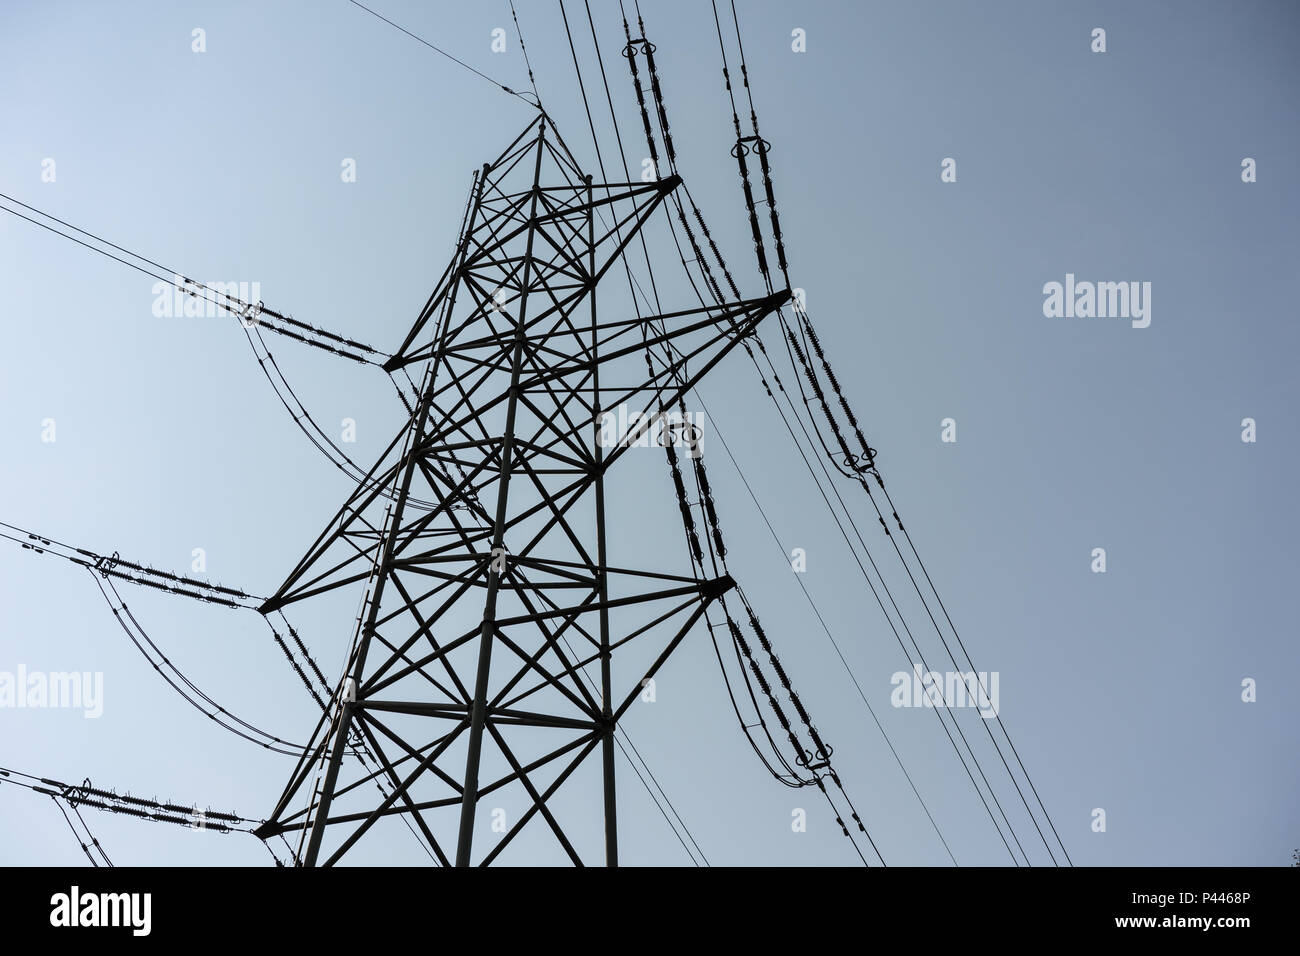 Power Tower industry pole for electricity, close up with cloudy dark sky, low angle view - Stock Image